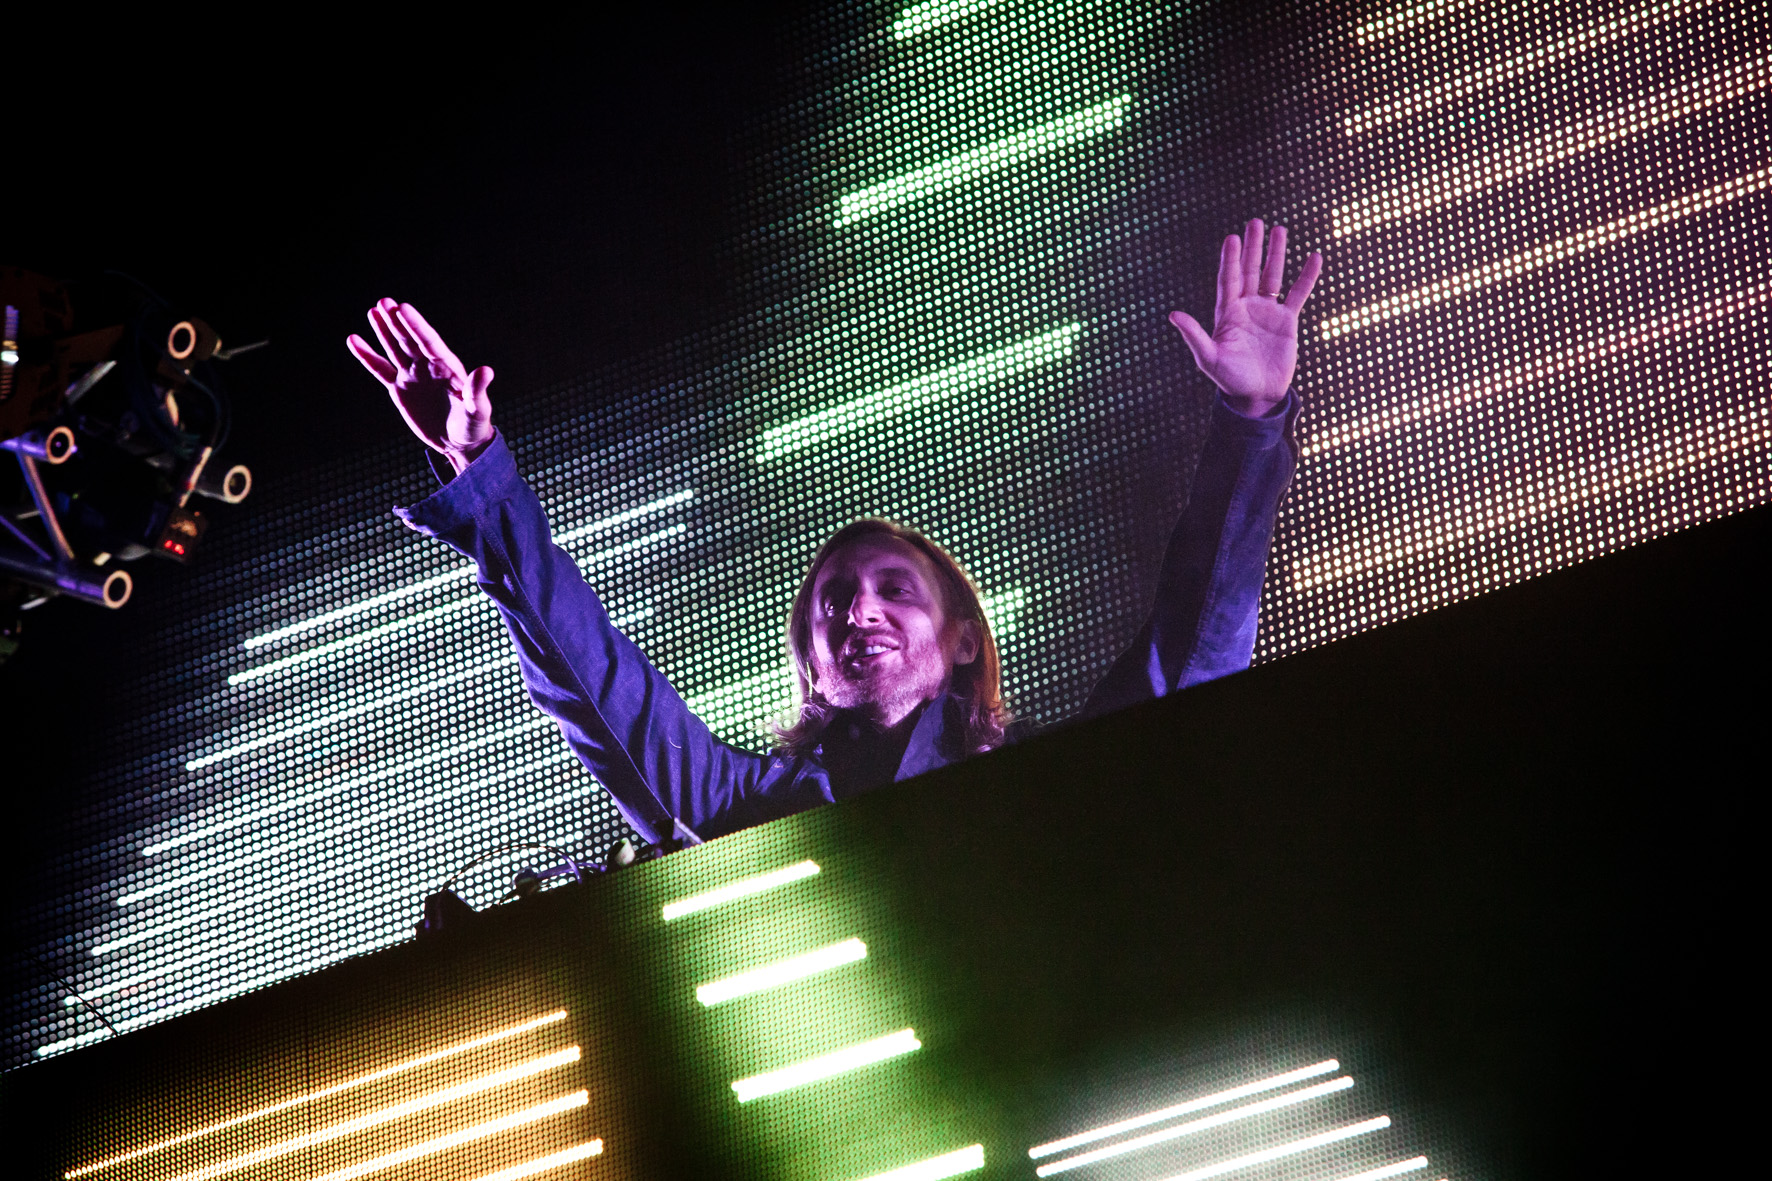 David Guetta @ Electric Love